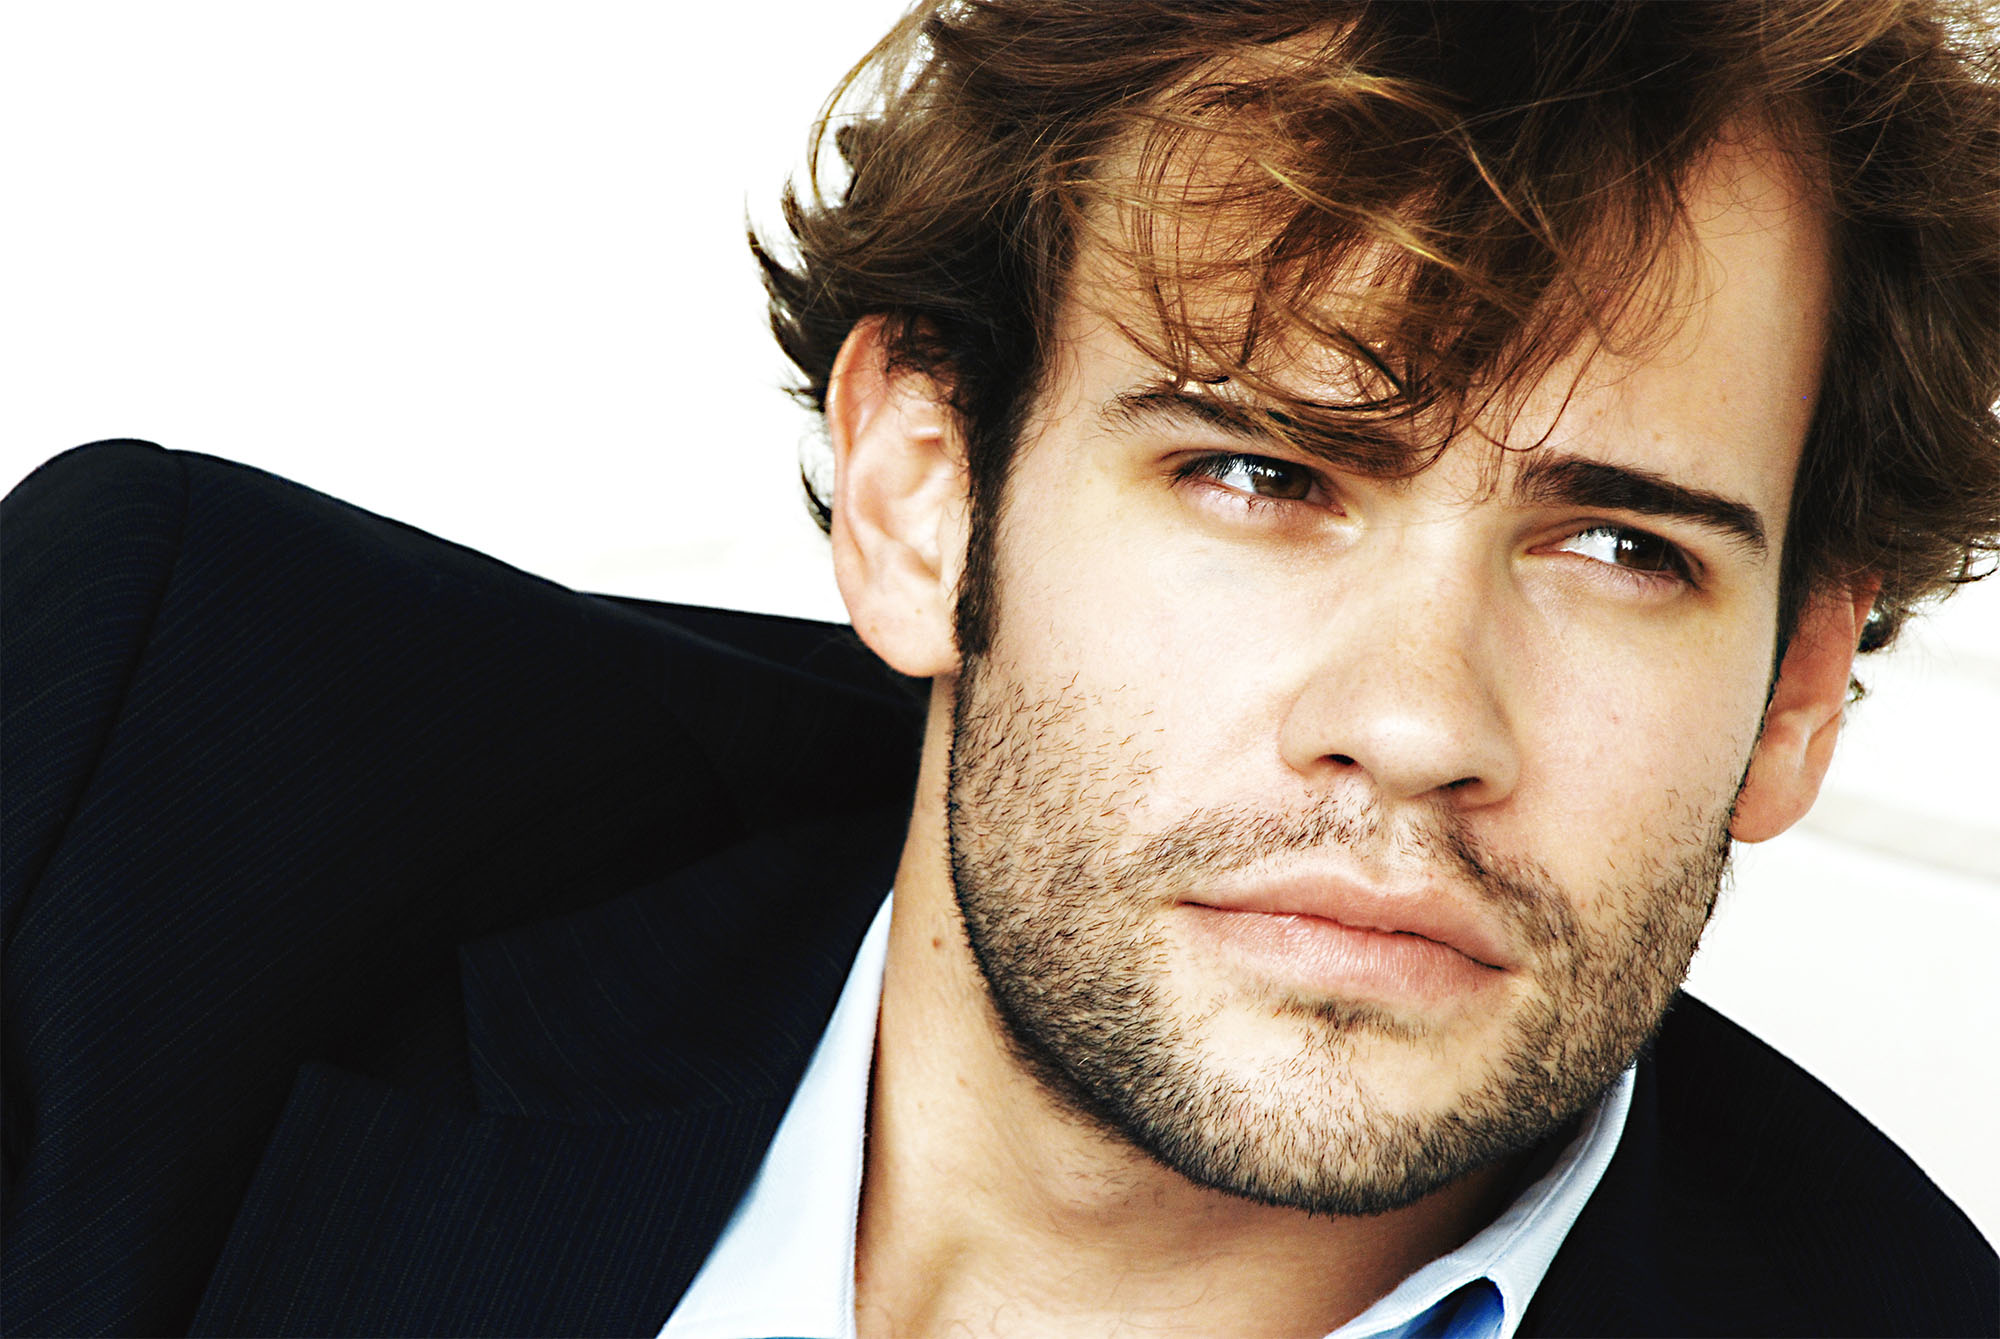 Watch Rossif Sutherland video